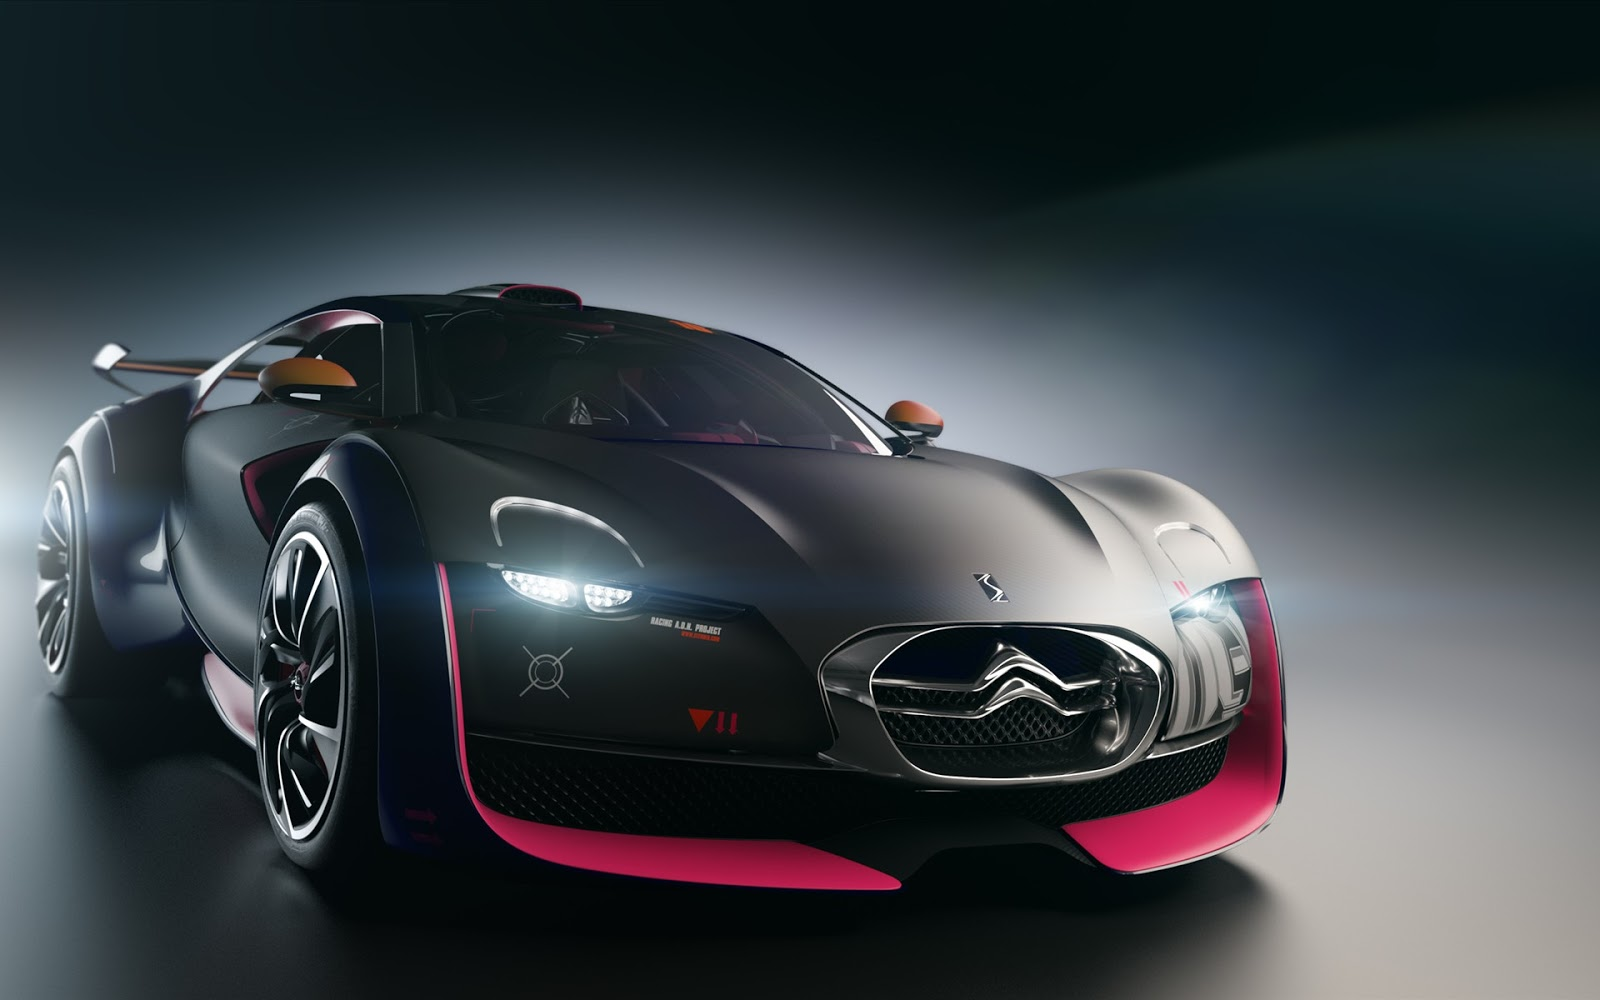 Citroen Survolt Concept Car Wallpapers Hd Emran Hasmi Wallpaper